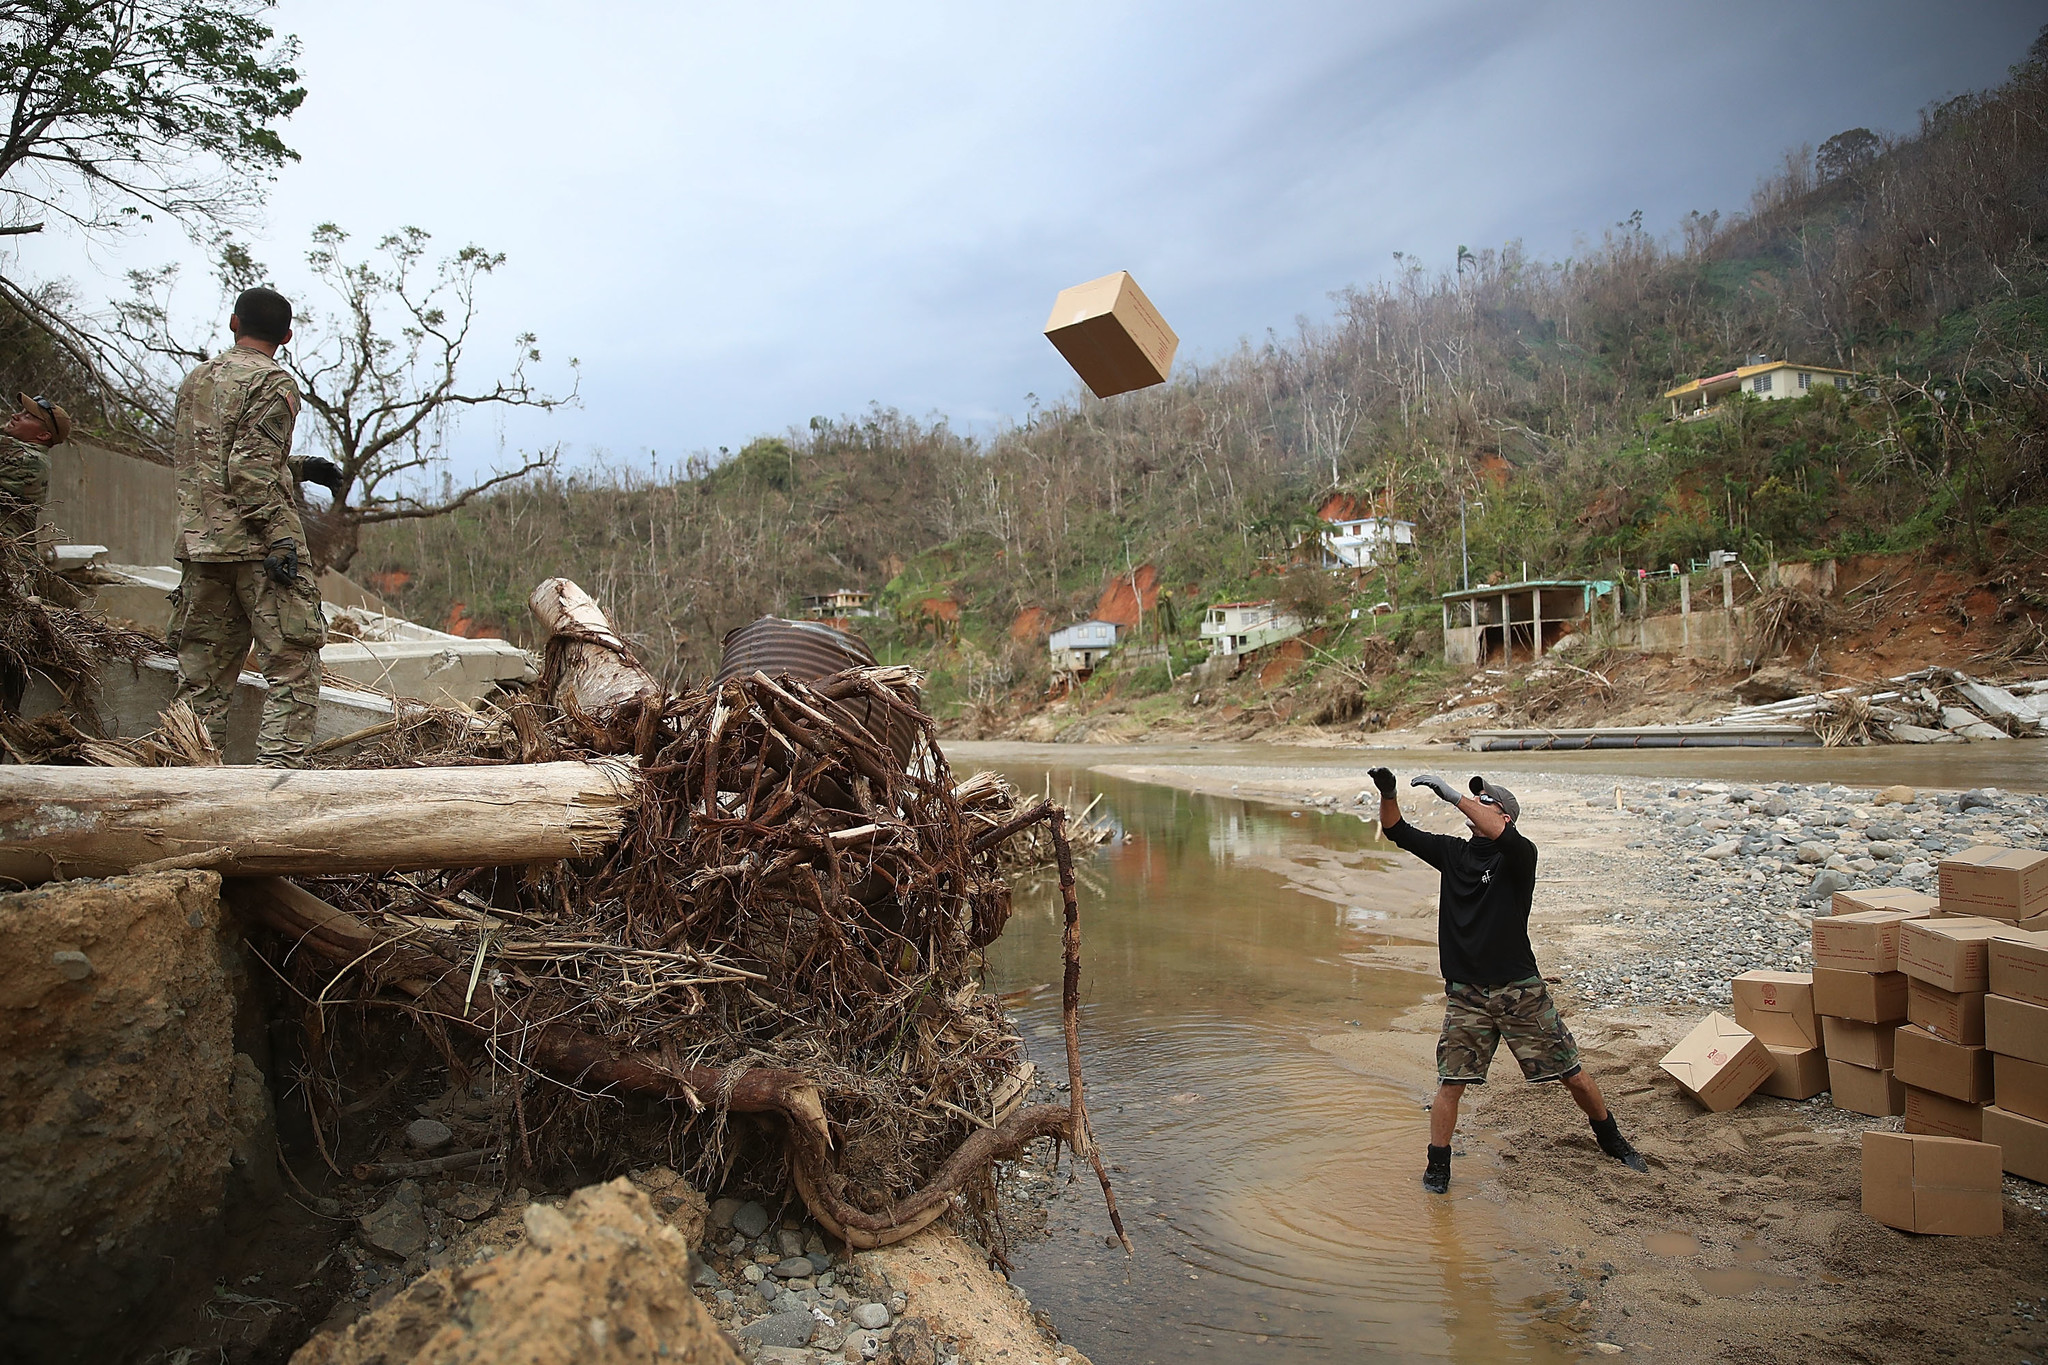 BESTPIX - Puerto Rico Faces Extensive Damage After Hurricane Maria